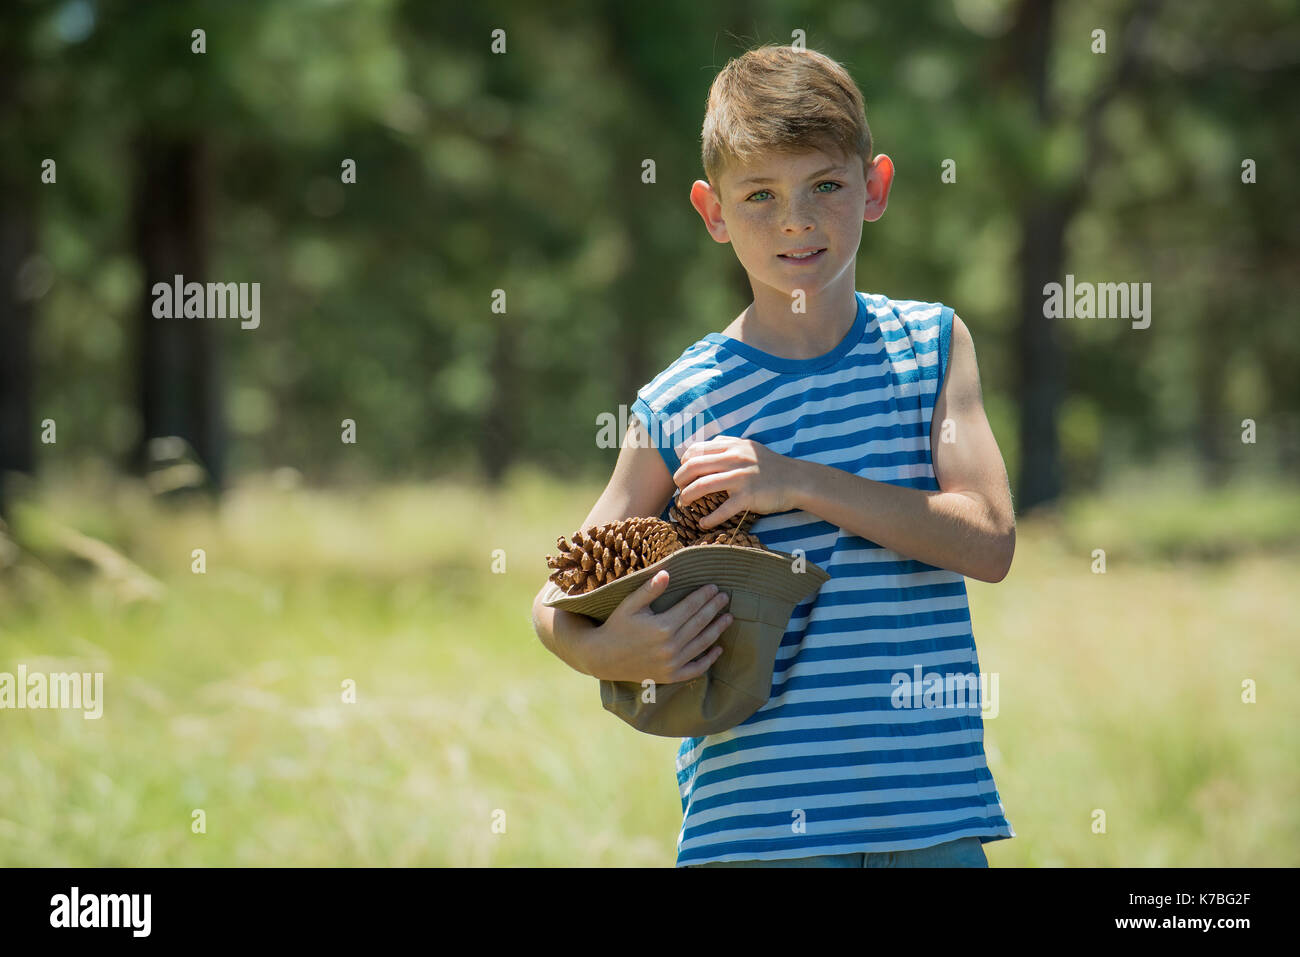 Boy carrying pinecones, portrait Stock Photo